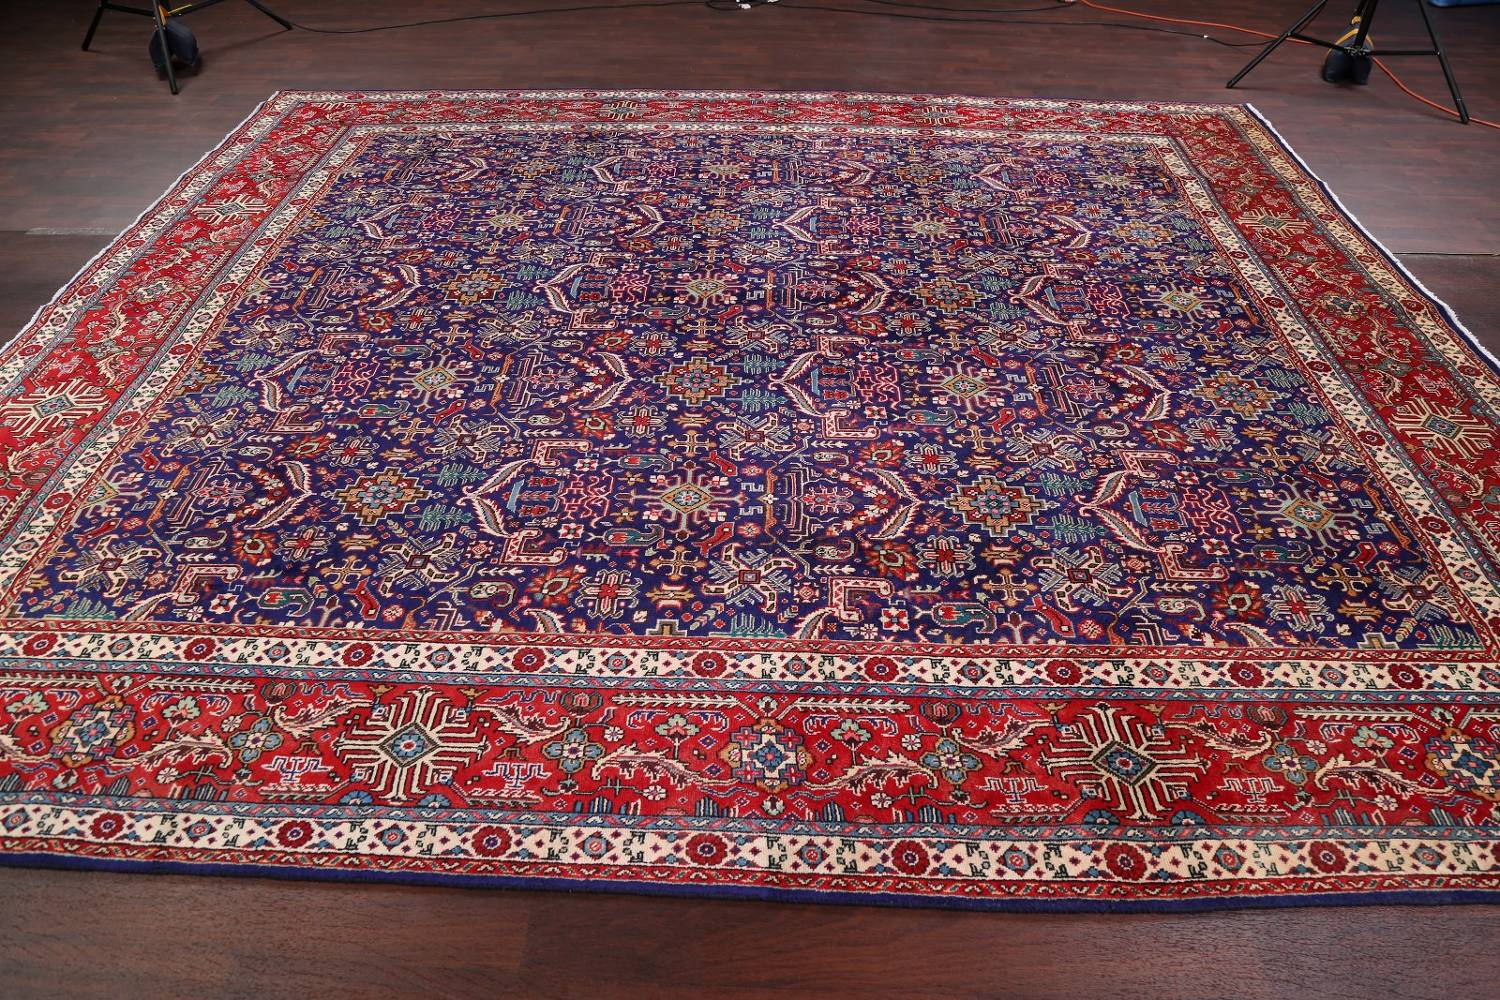 Geometric Square Royal Blue 11x12 Tabriz Persian Area Rug